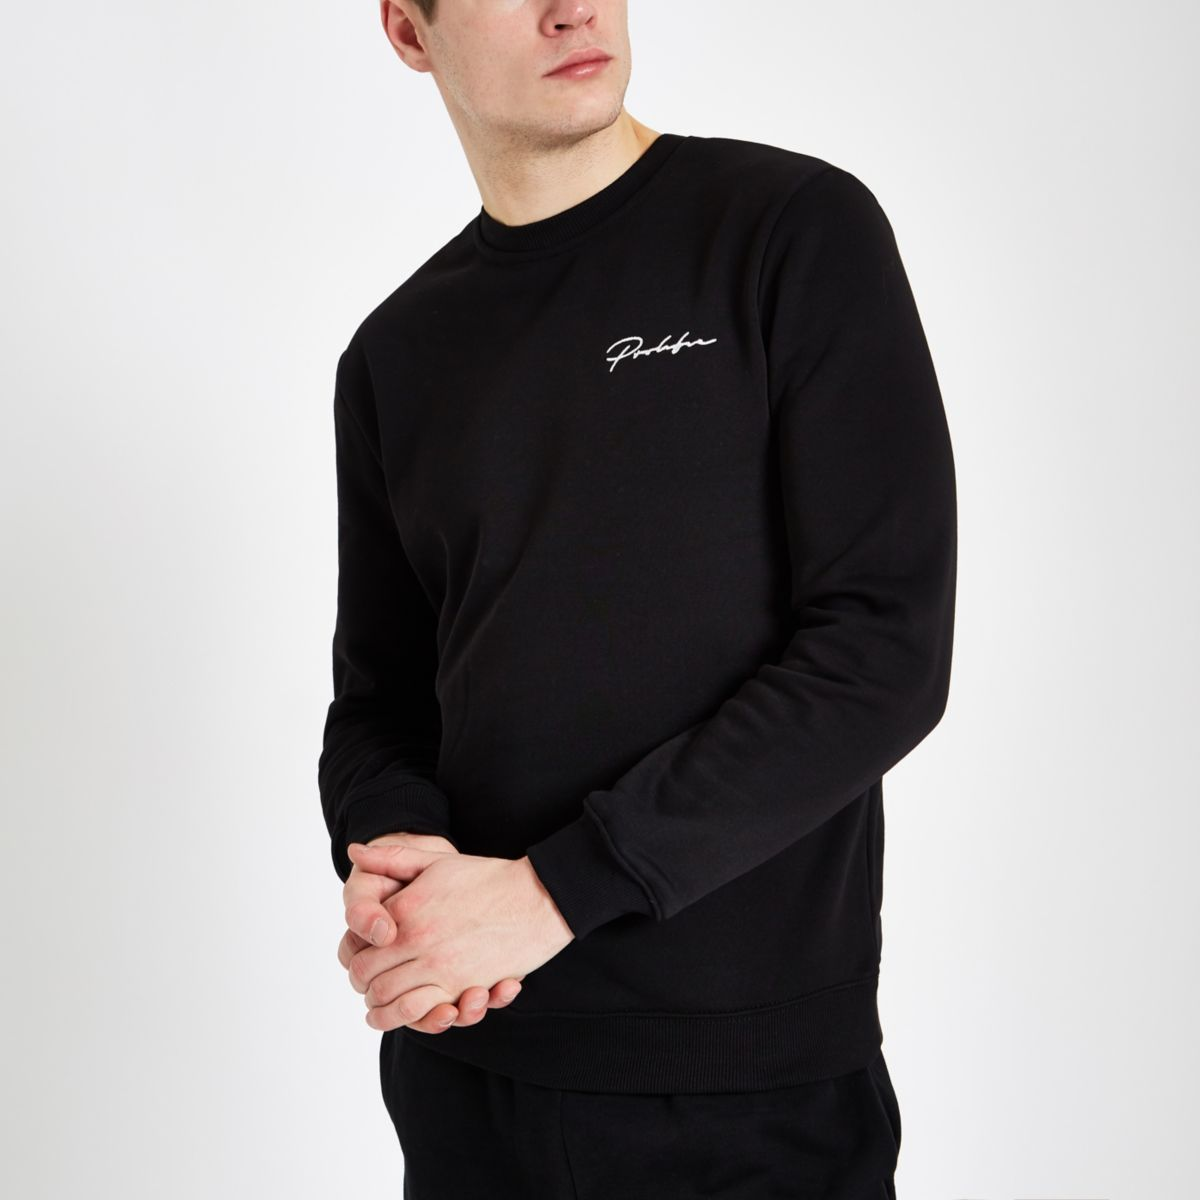 Black 'Prolific' slim fit sweatshirt